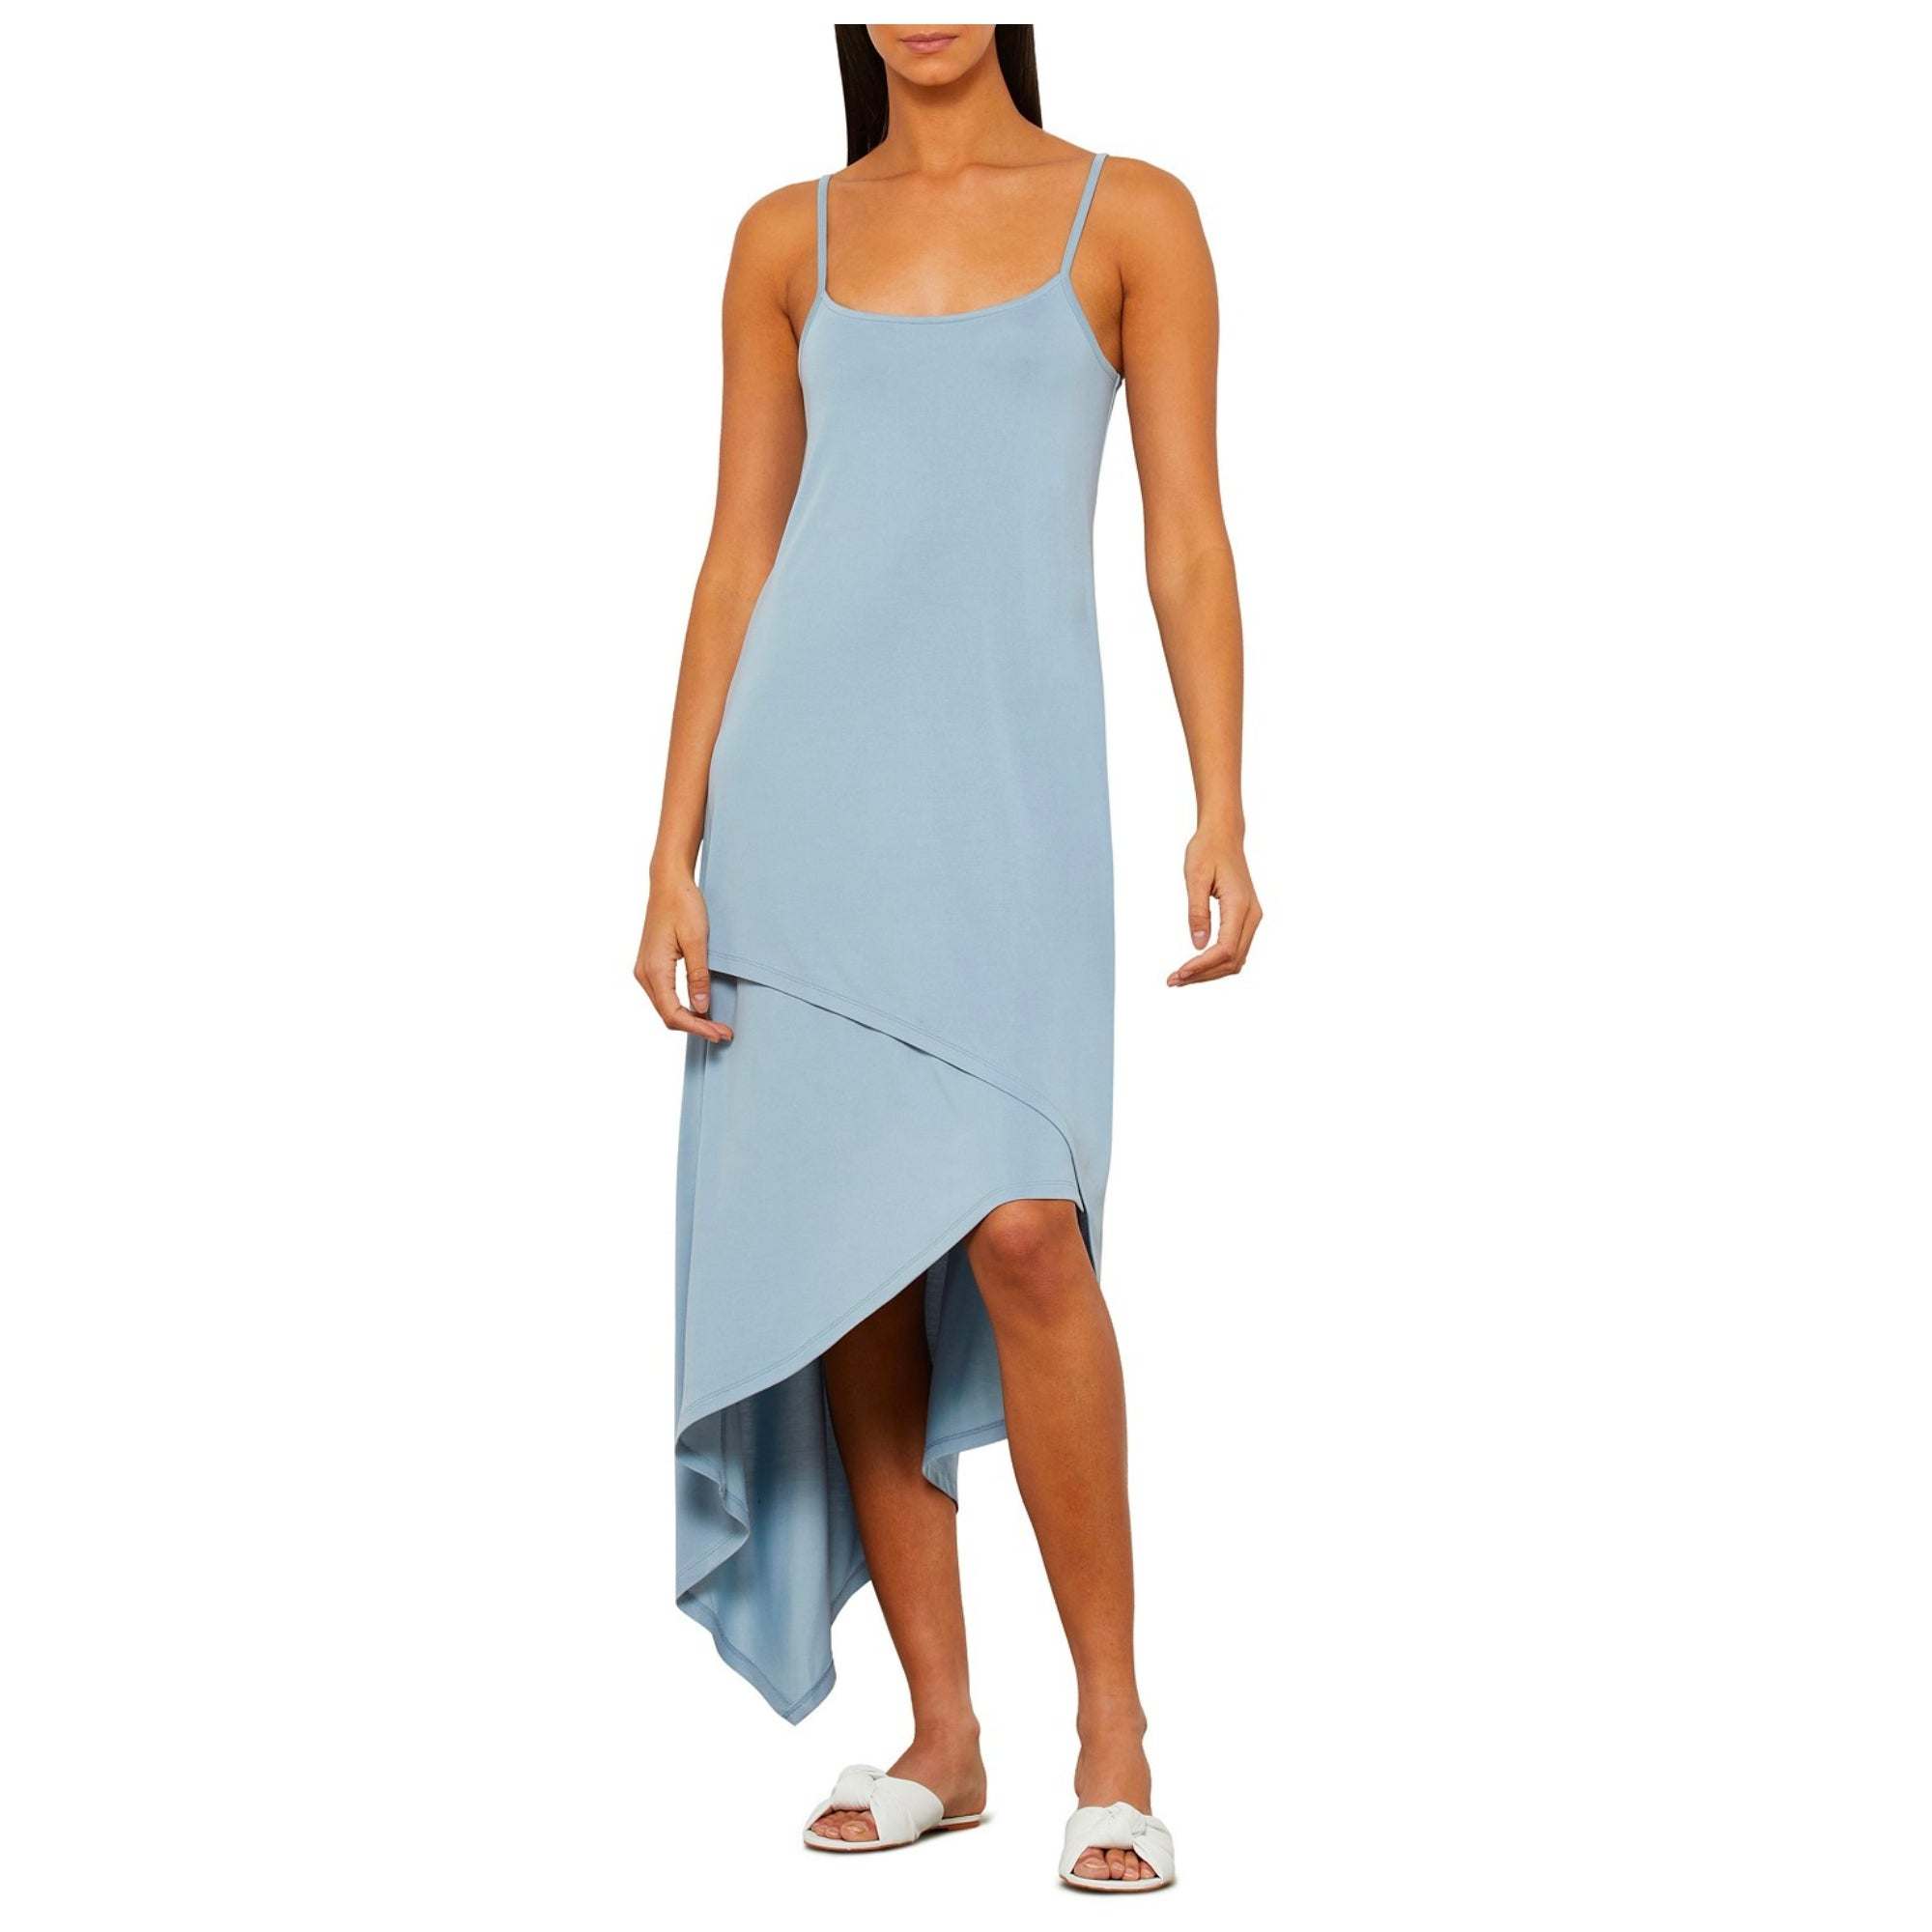 BCBGMAXAZRIA Asymmetrical Slip Dress - Macy's